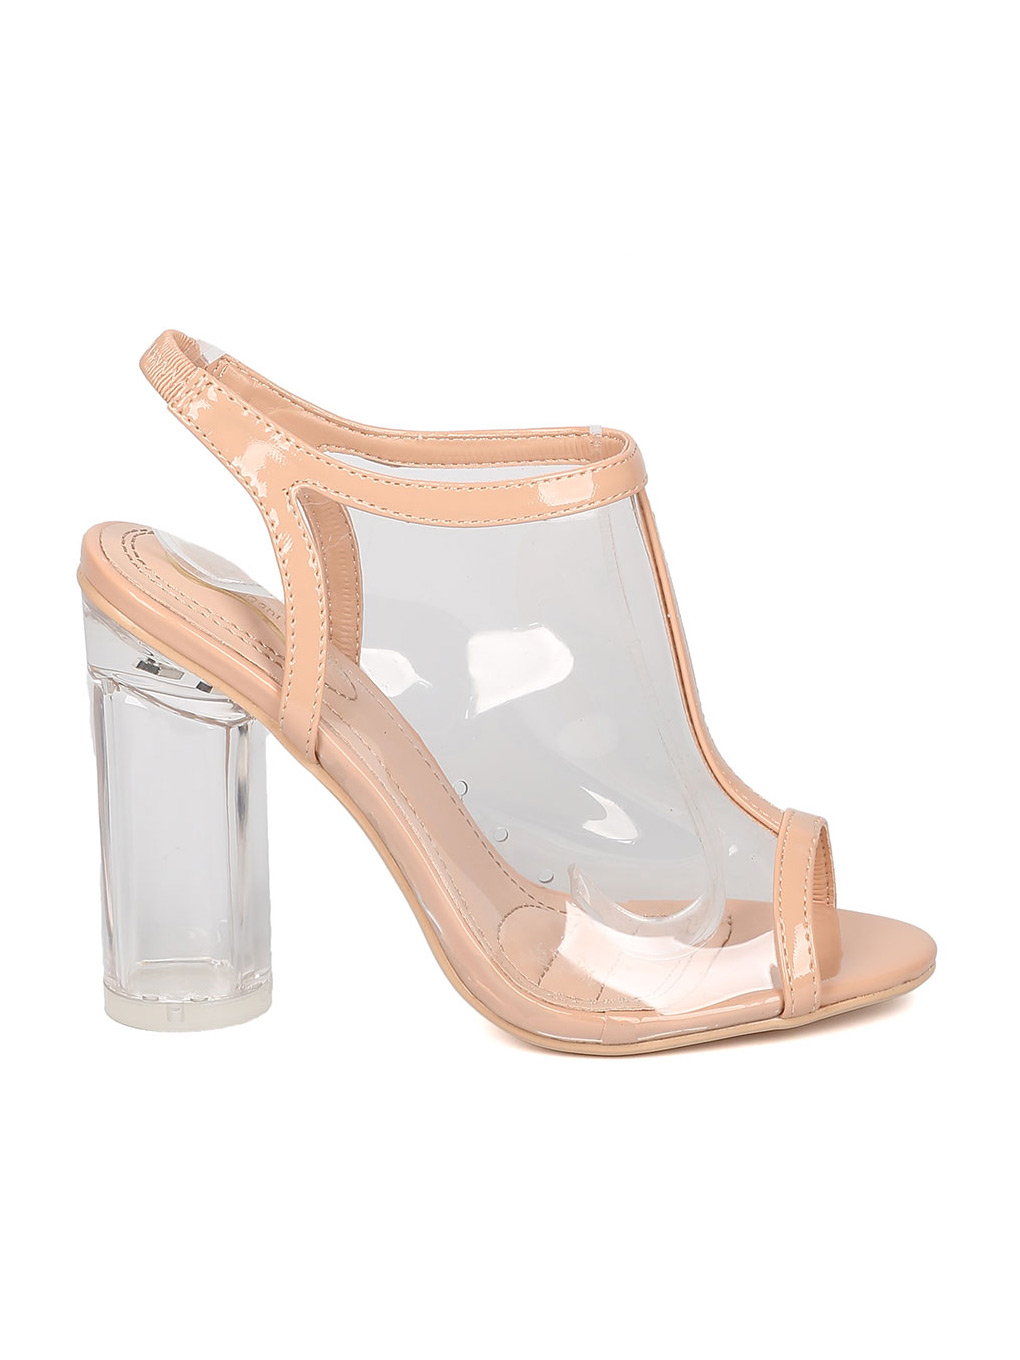 Women Lucite Slingback Mule - Party, Dressy, Formal - Peep Toe Block Heel - GE47 By Alrisco